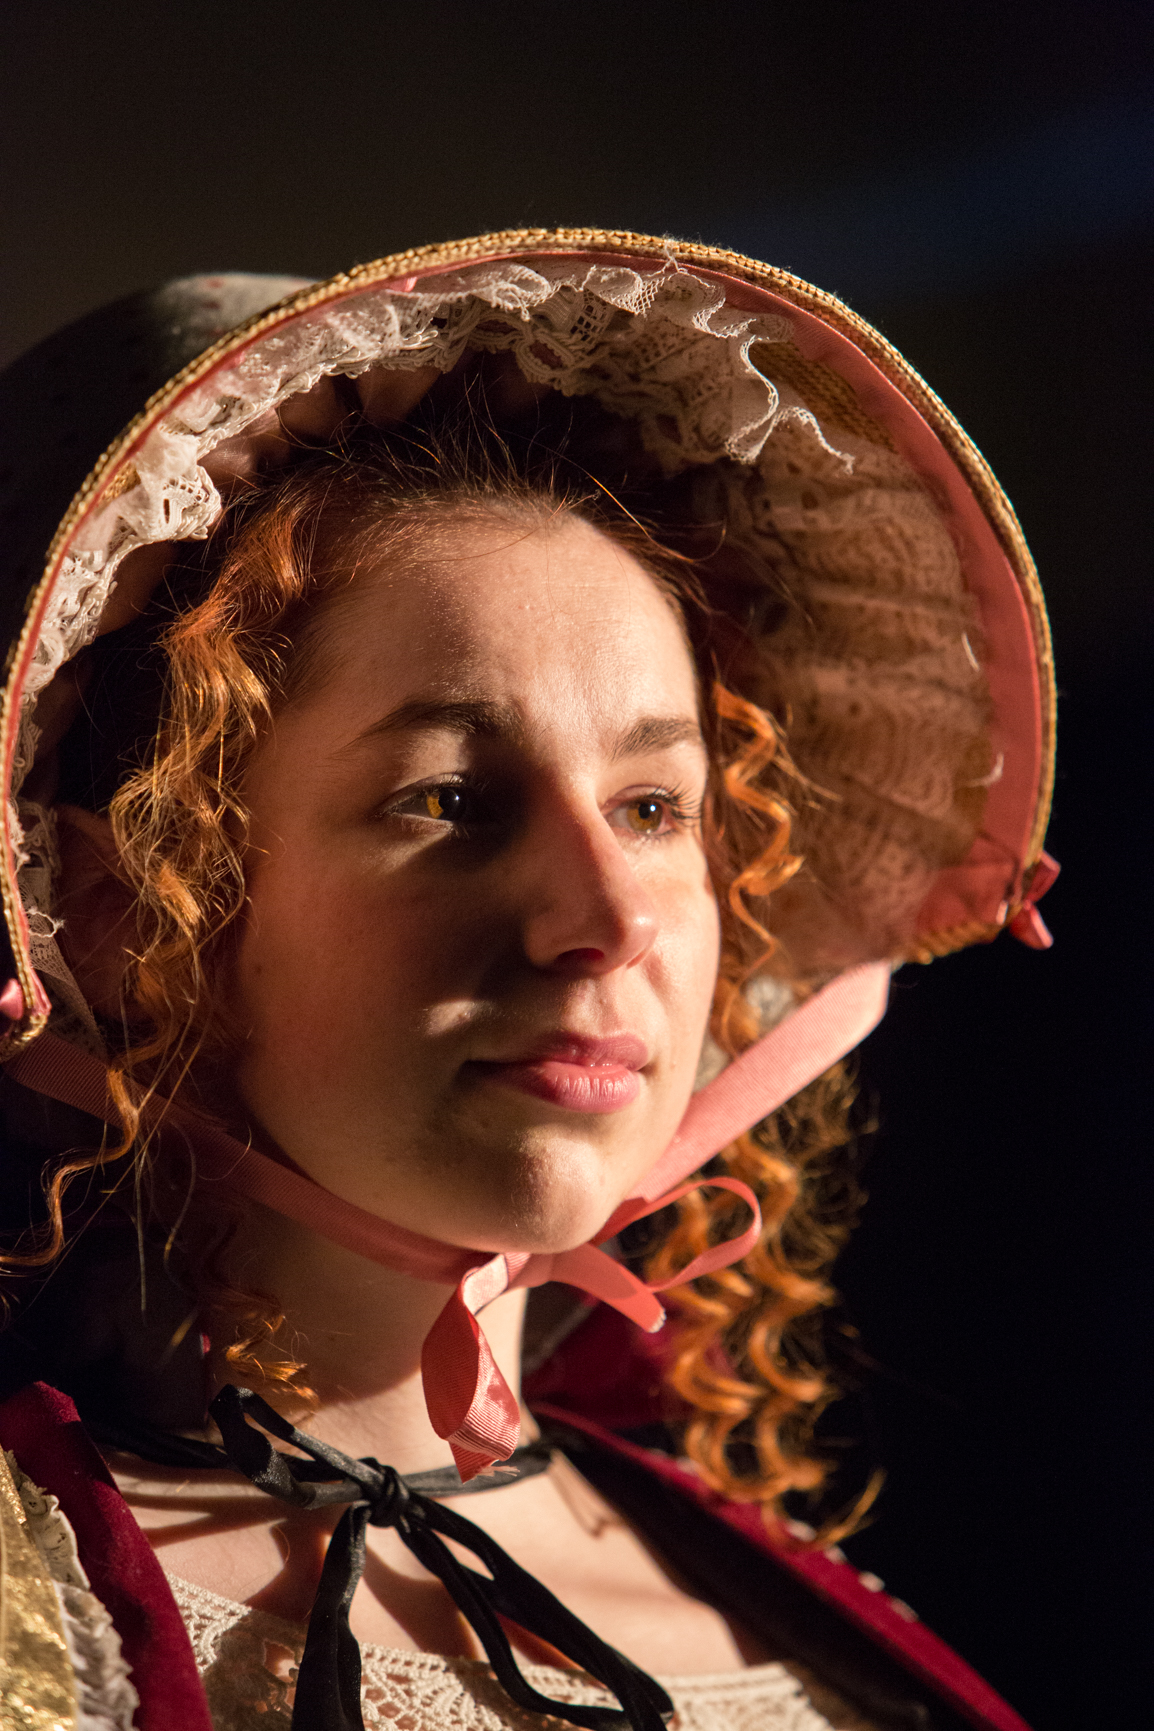 Eloise Kay as Nell in THE OLD CURIOSITY SHOP